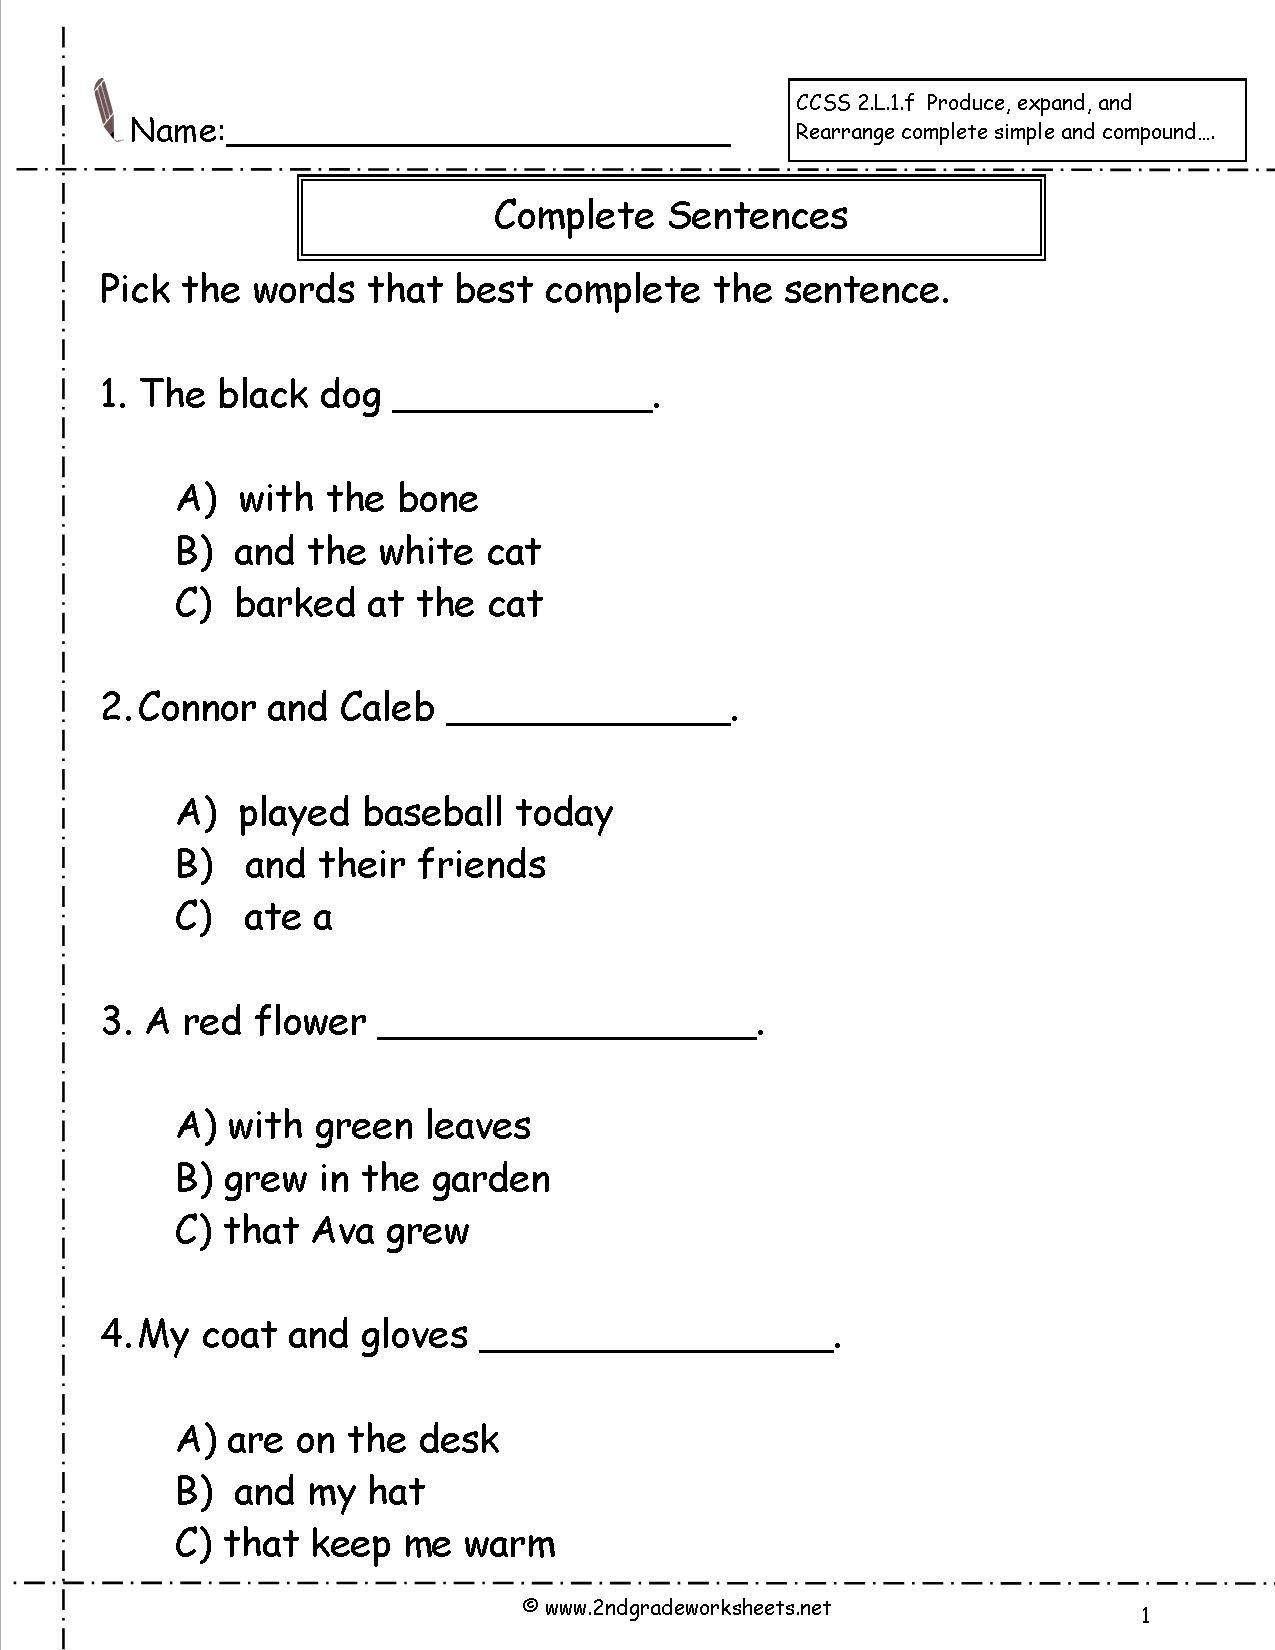 Complete Sentence Worksheets 3rd Grade Pin On Educational Worksheets Template